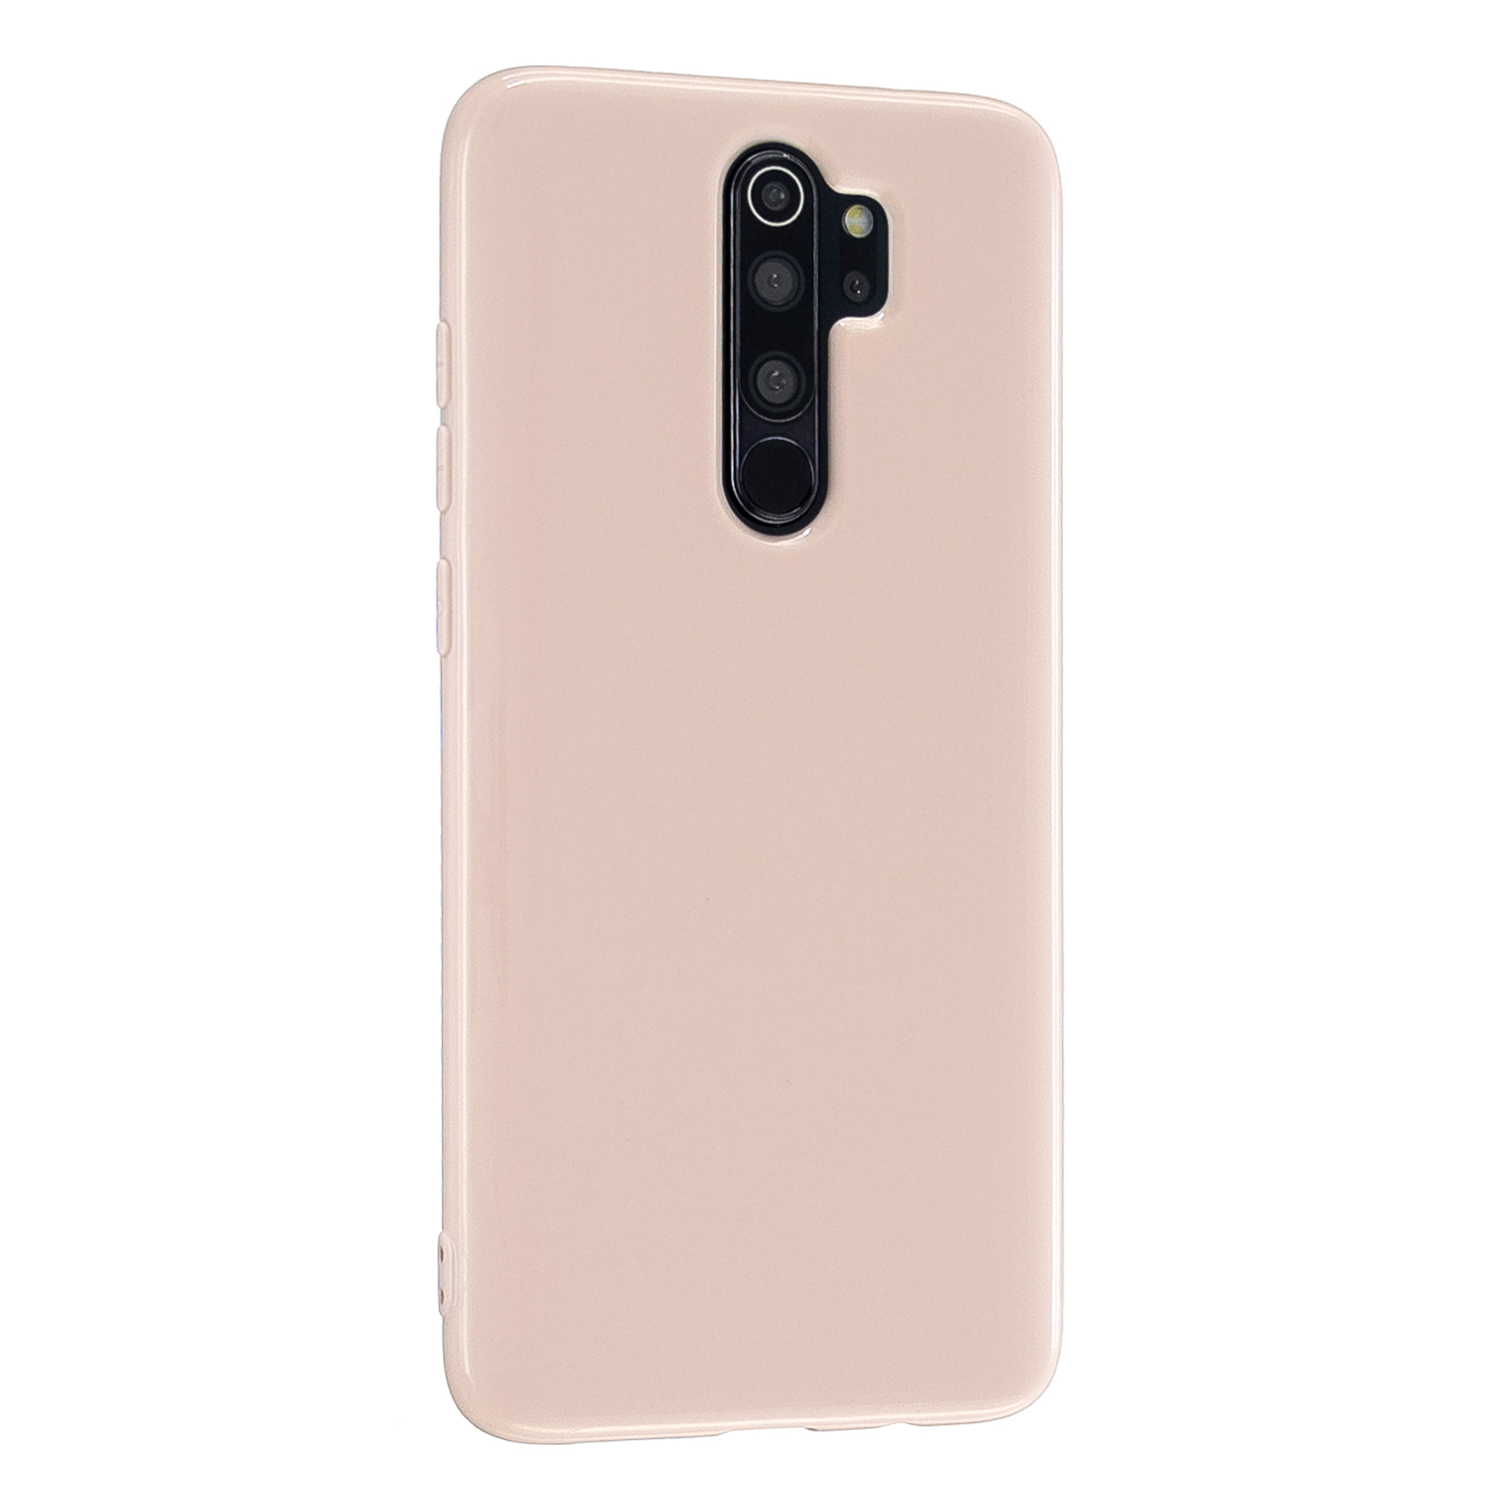 for VIVO Reno Ace/X2 PRO/ A9 2020/A5 2020 Thicken 2.0mm TPU Back Cover Cellphone Case Shell light pink